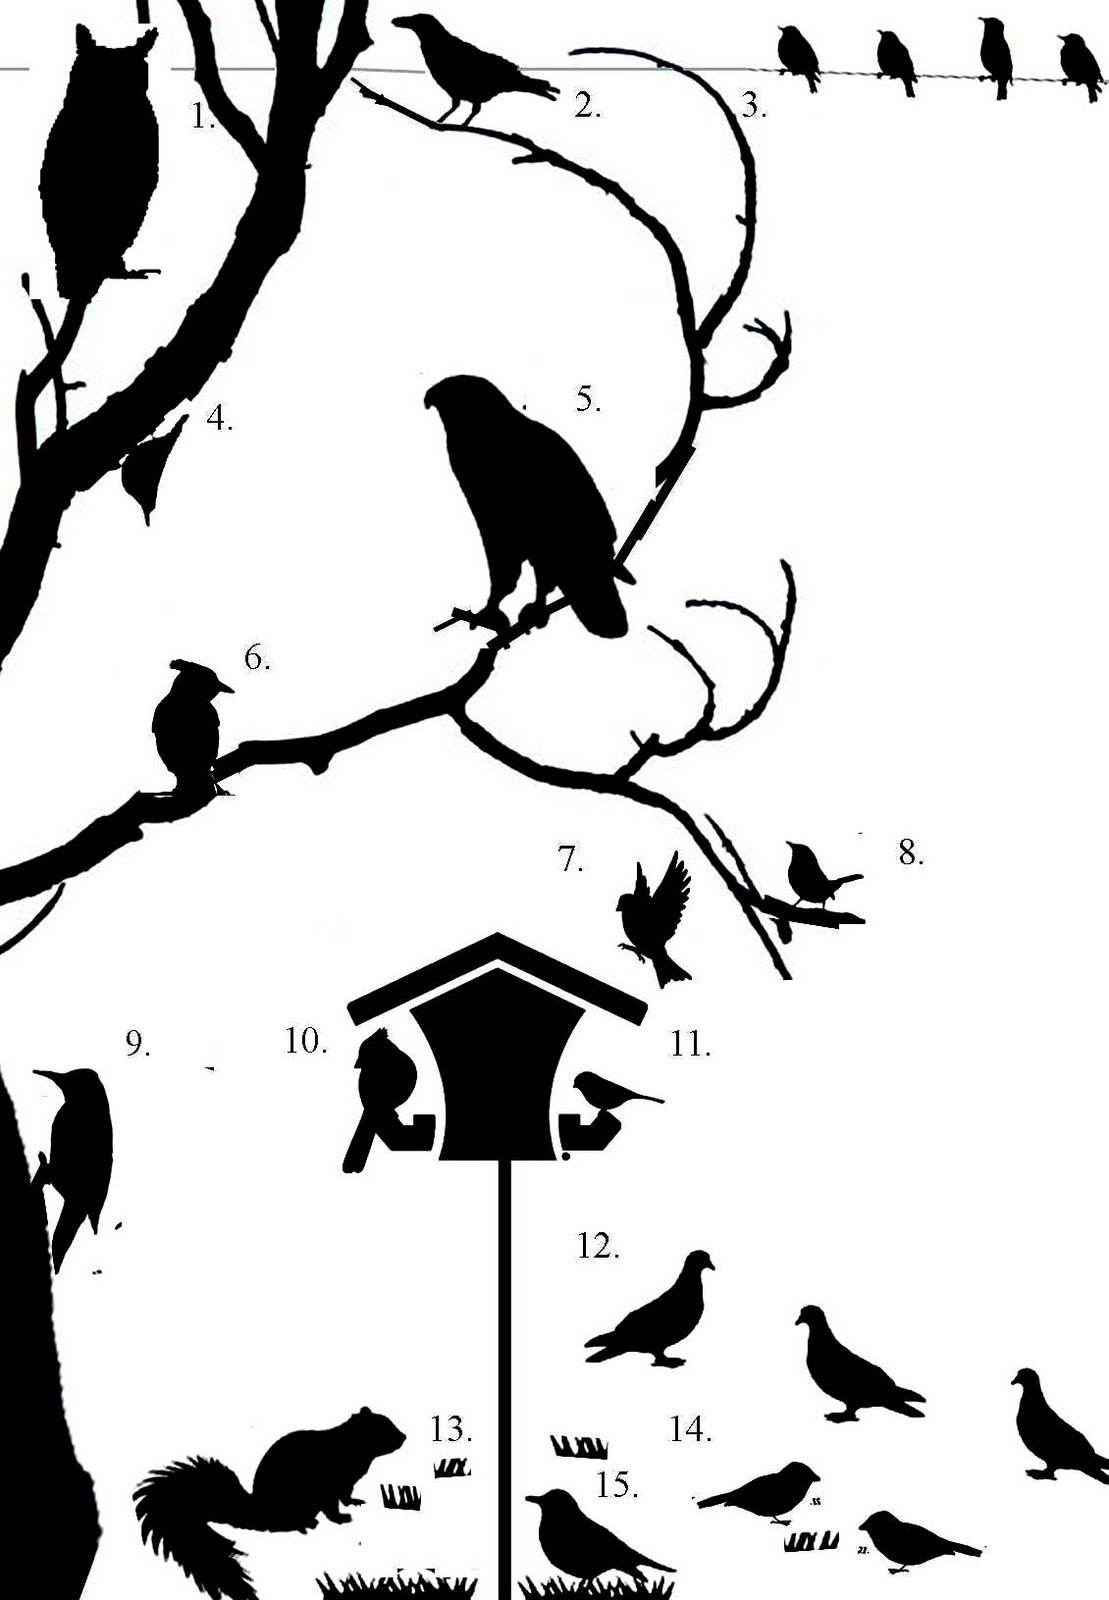 Wild Birds Unlimited: Books to help you with the #GBBC